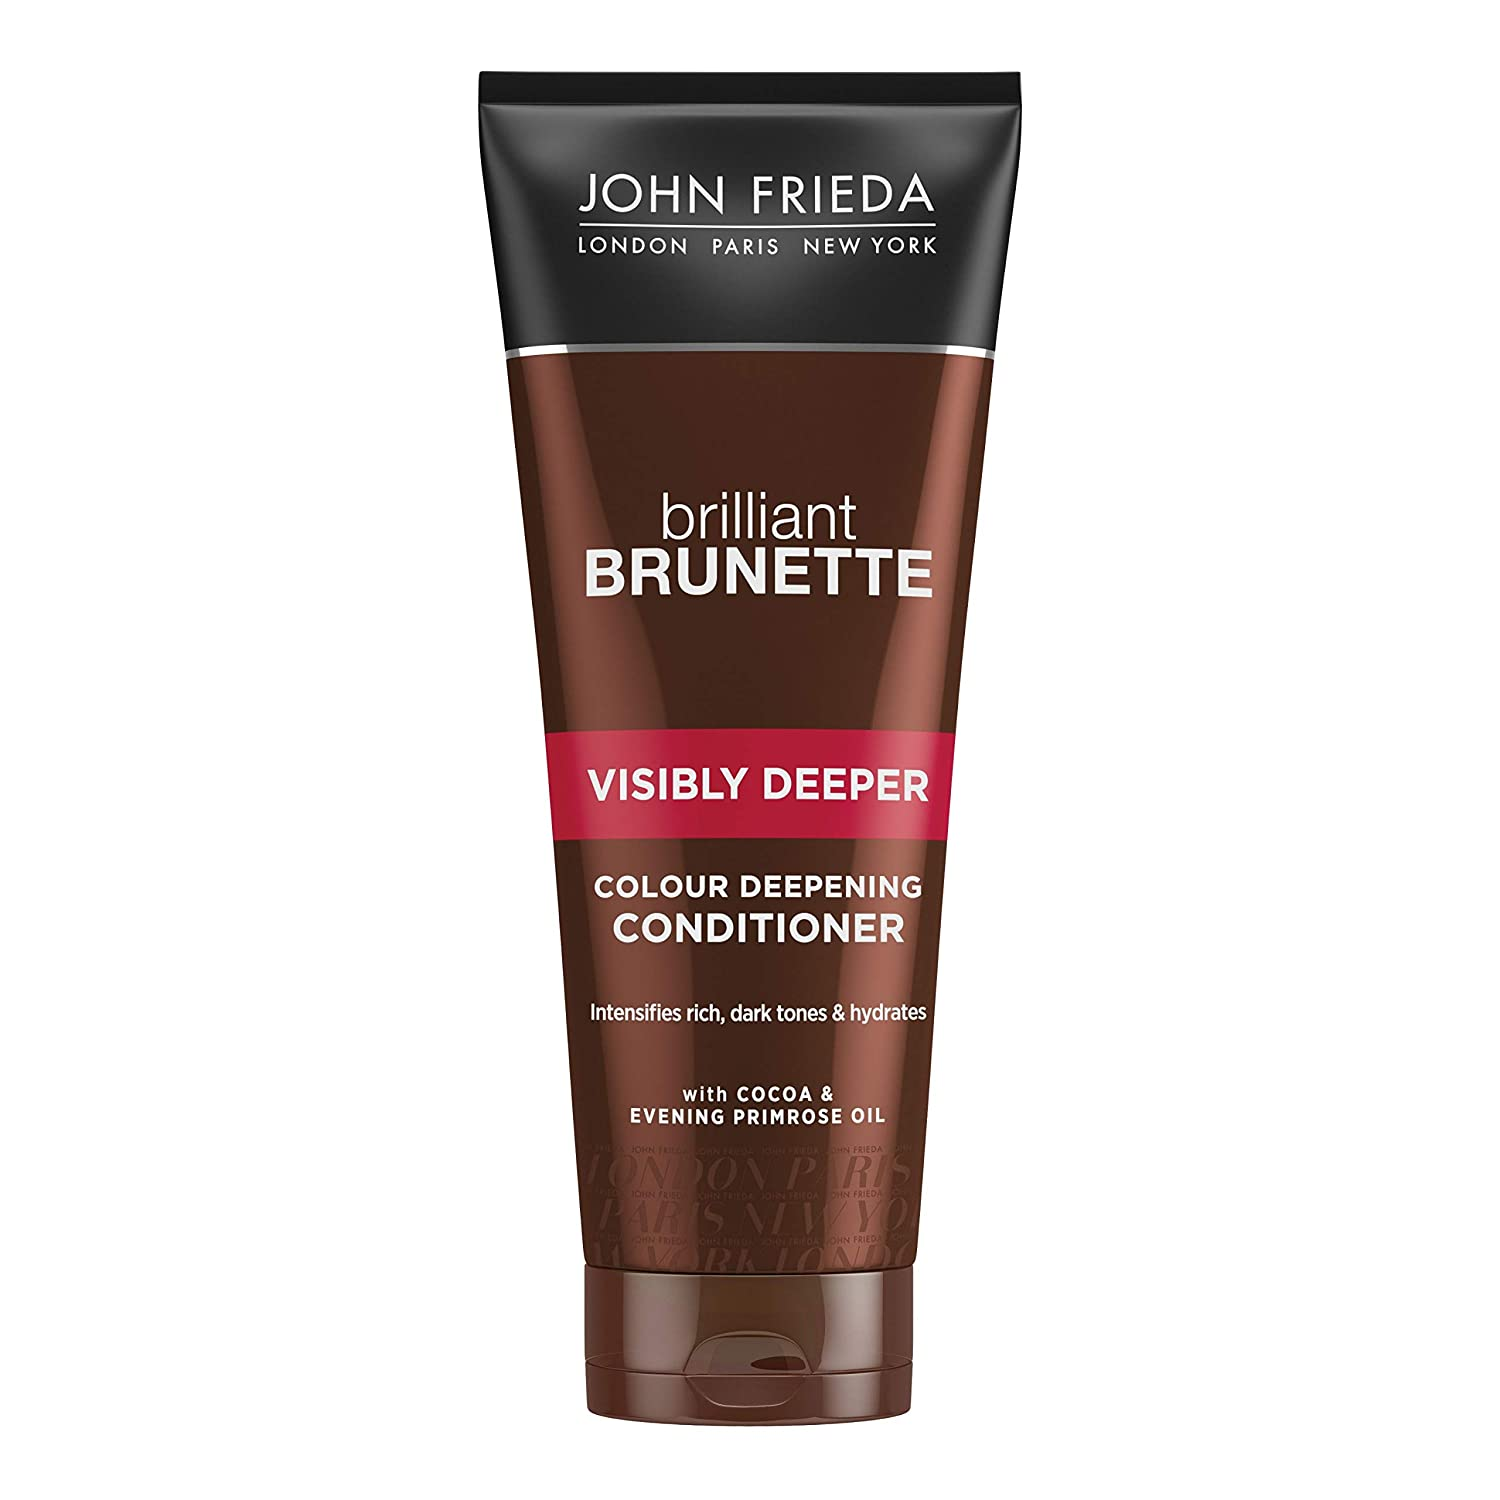 John Frieda Brilliant Brunette Visibly Deeper Colour Deepening Shampoo, 250 ml Kao 2533500